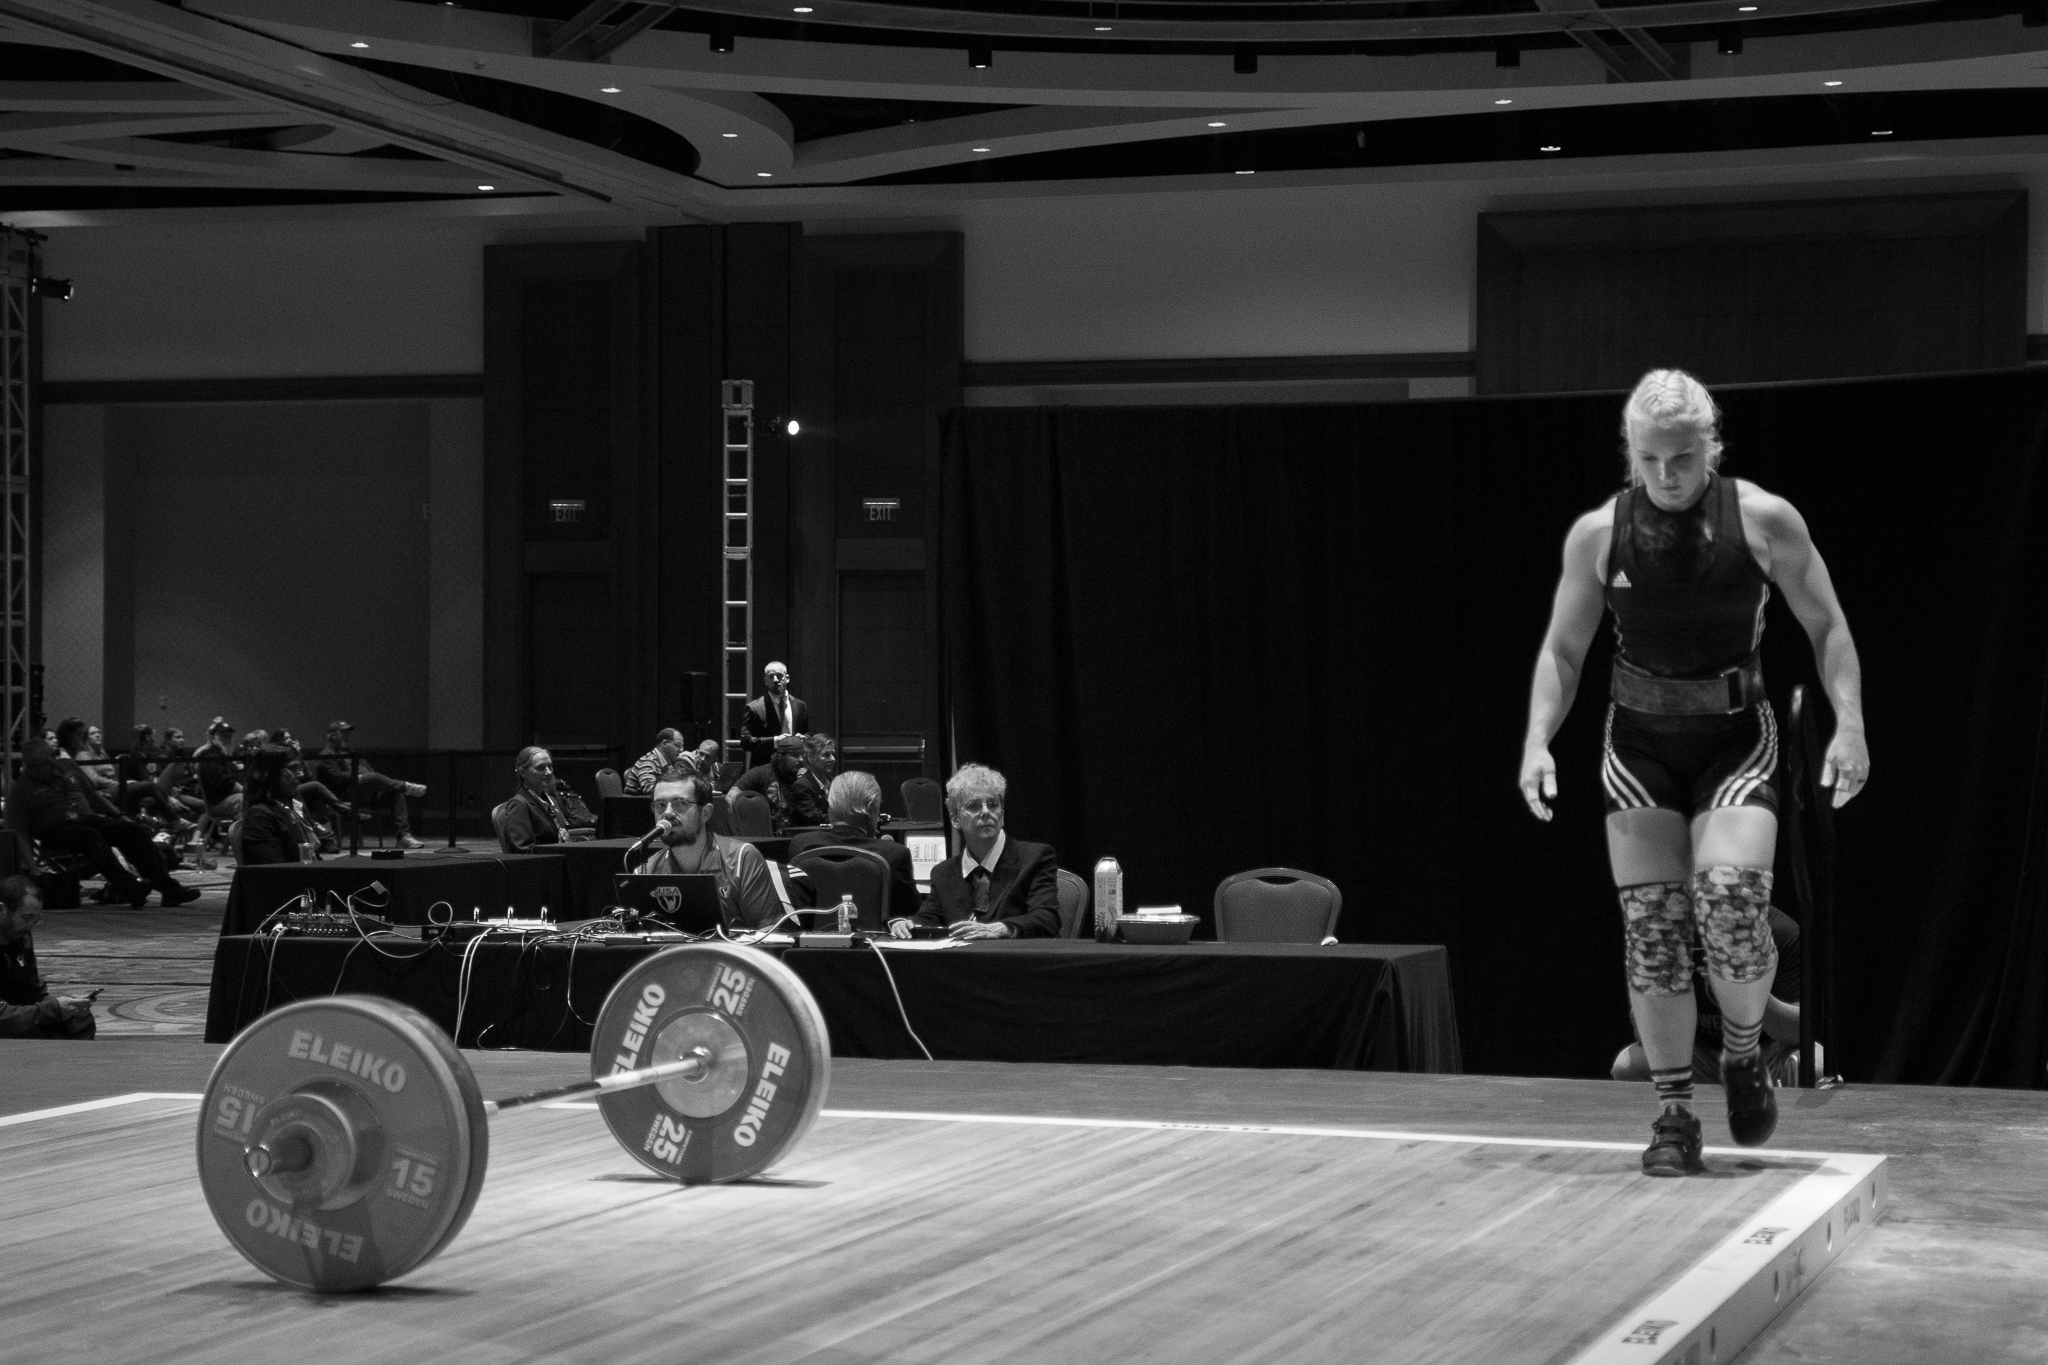 american-open-photos-session-a-weightlifters-weightlifting-photography-everyday-lifters (7 of 10).jpg